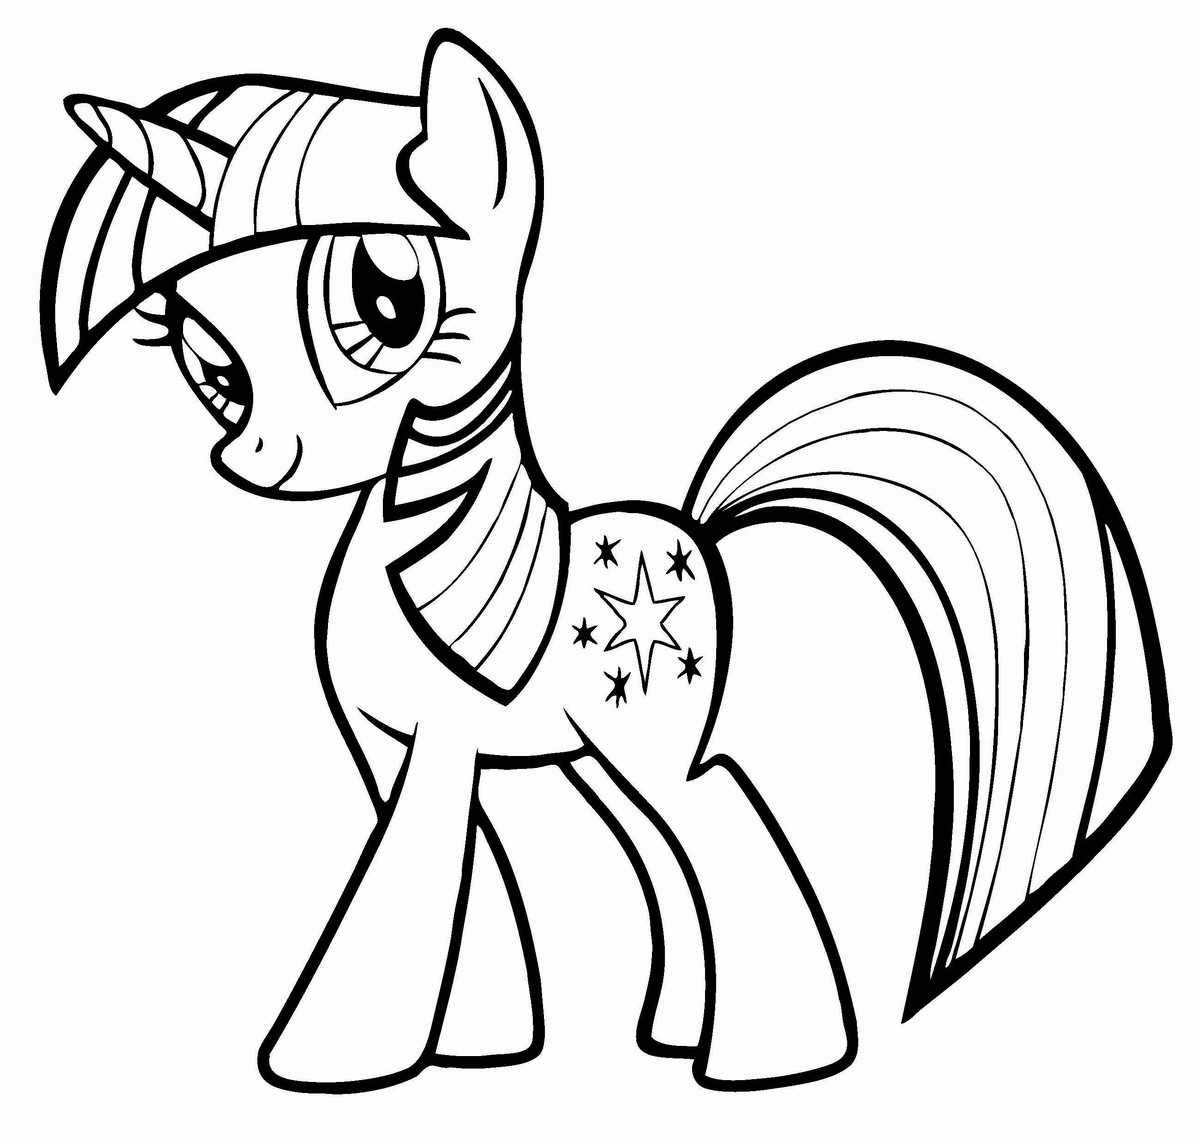 mlp coloring page my little pony human coloring pages coloring home page mlp coloring